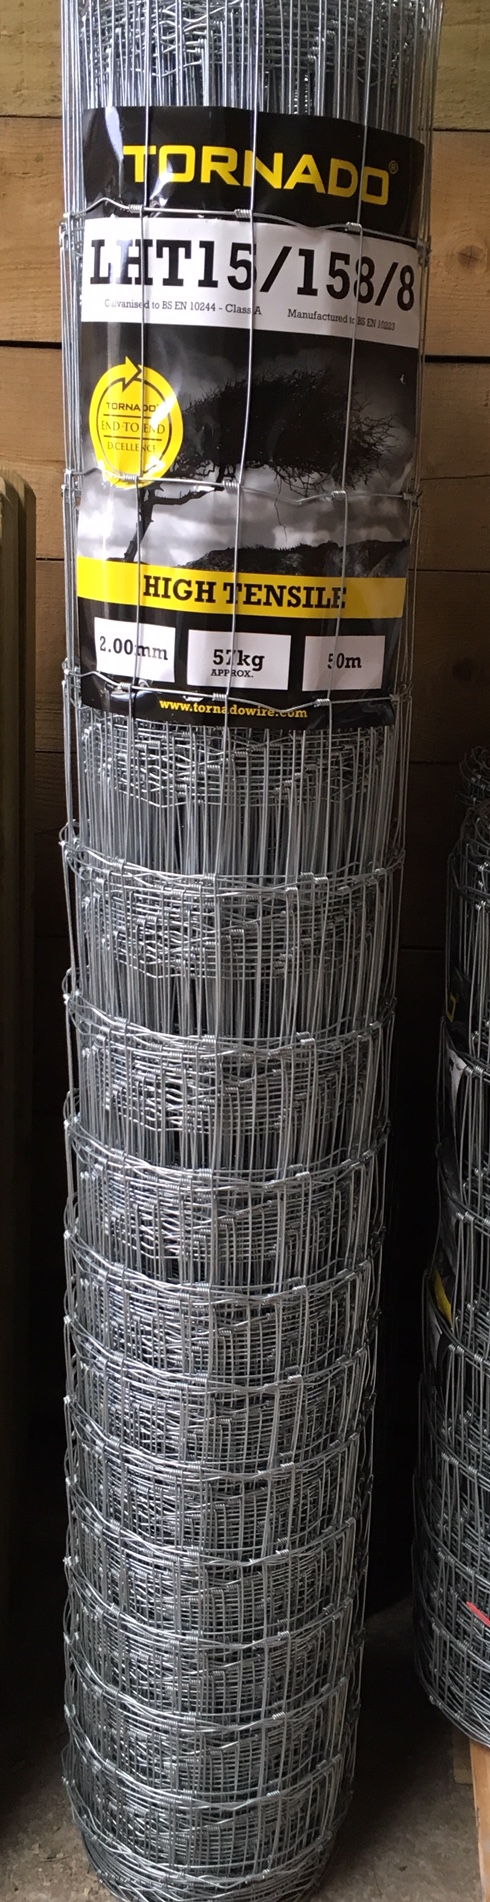 LHT15/158/8 Poultry Netting